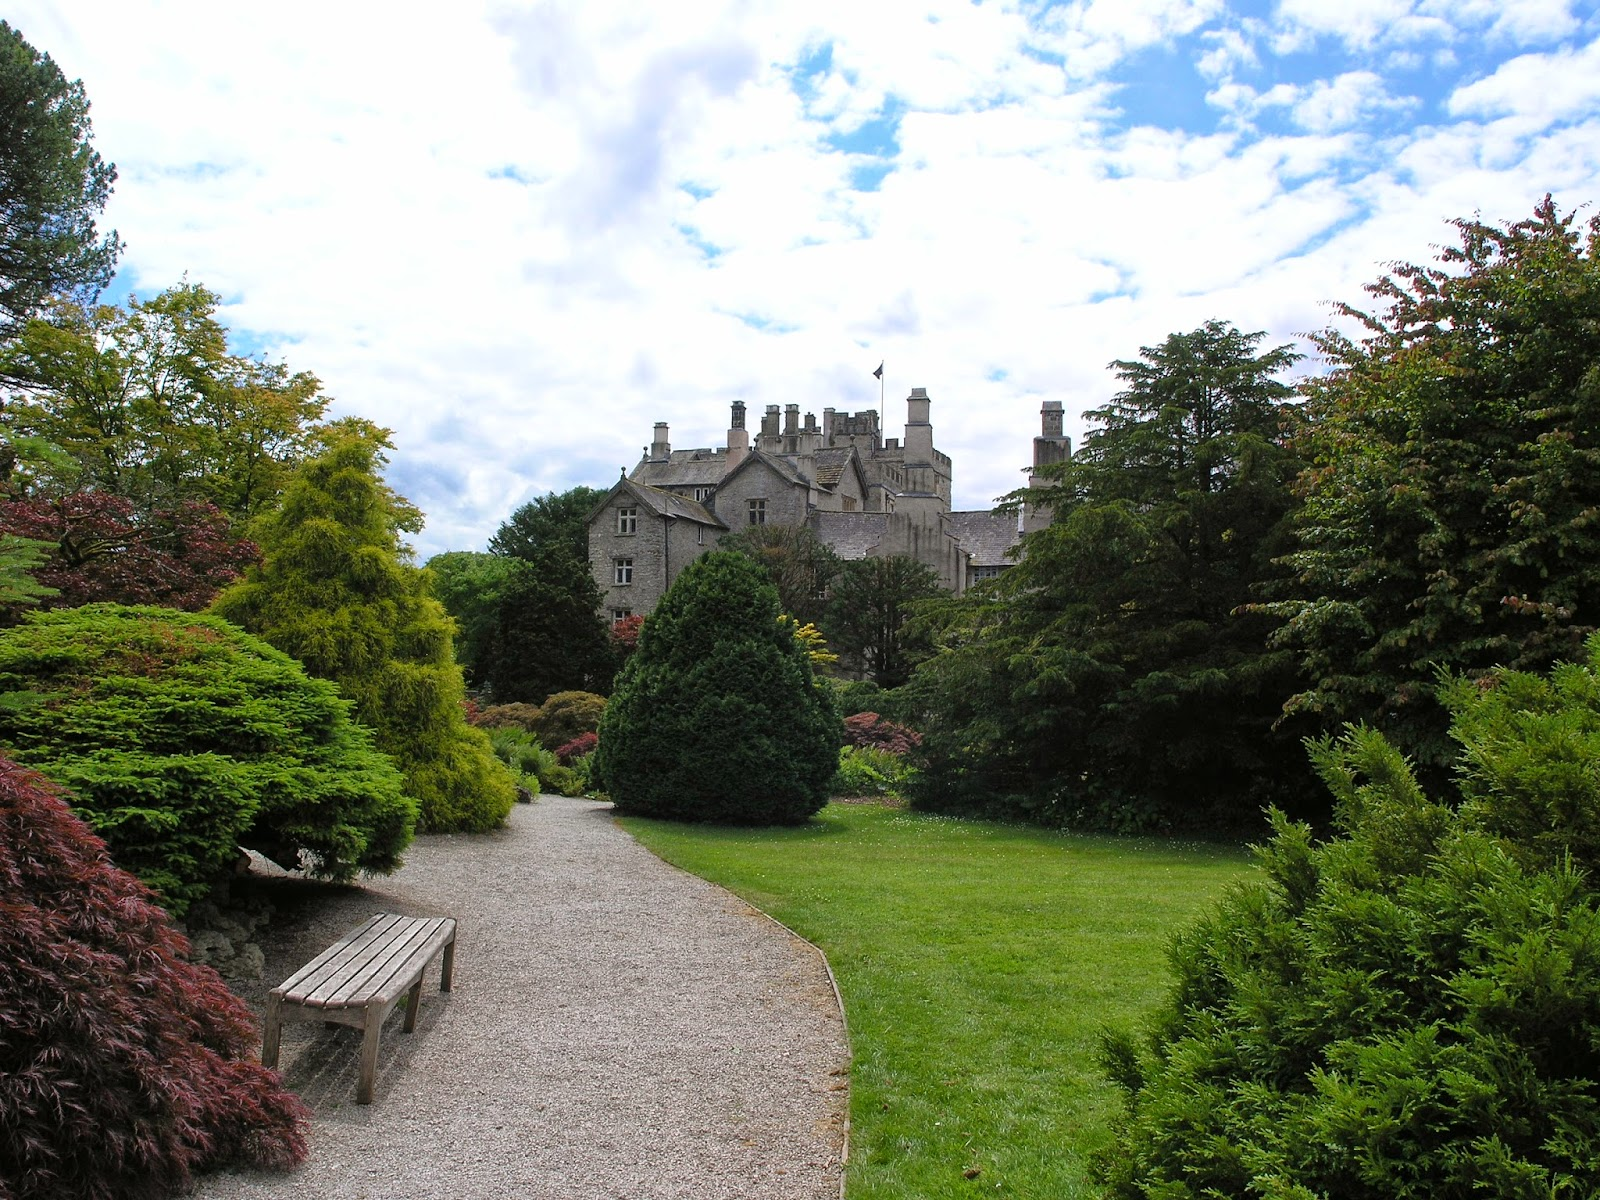 It Is An Enjoyable And Largely Unpretentious Place To Visit, Set Within A  Lush Green And Verdant Landscape. The Castle Is Still Inhabited By The  Strickland ...